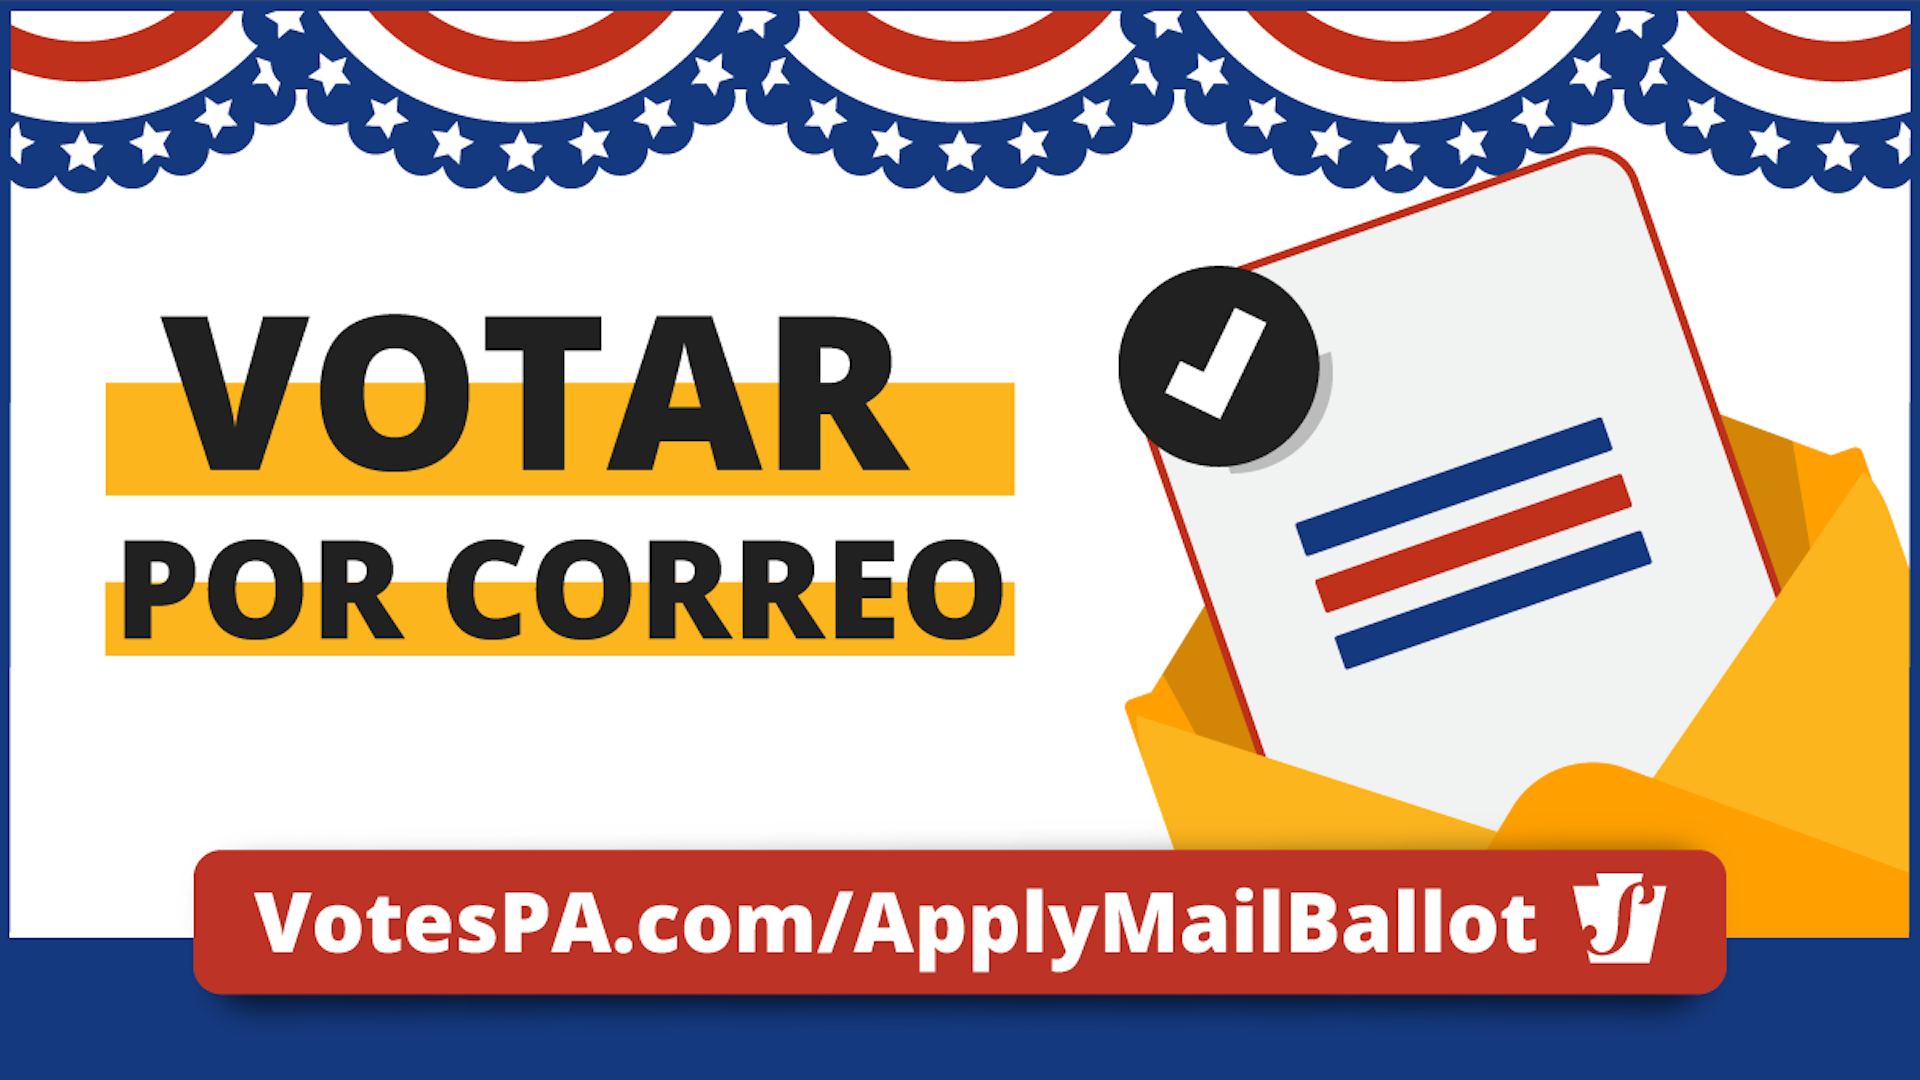 Pennsylvania's Department of State put out Spanish-language ads explaining how to vote by mail.